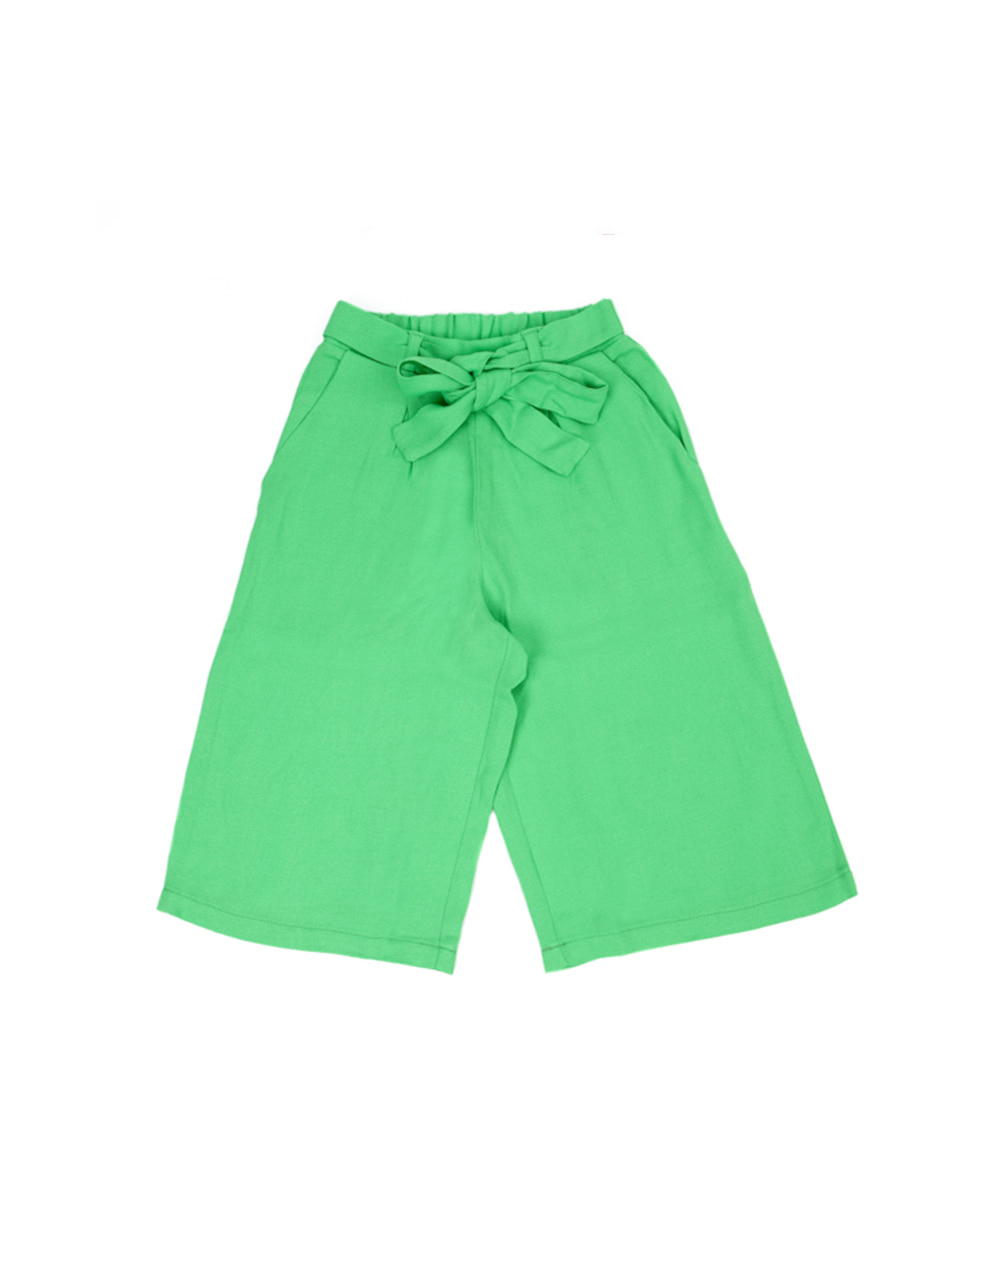 LILY BALOU  Lana Trousers   Poison Green